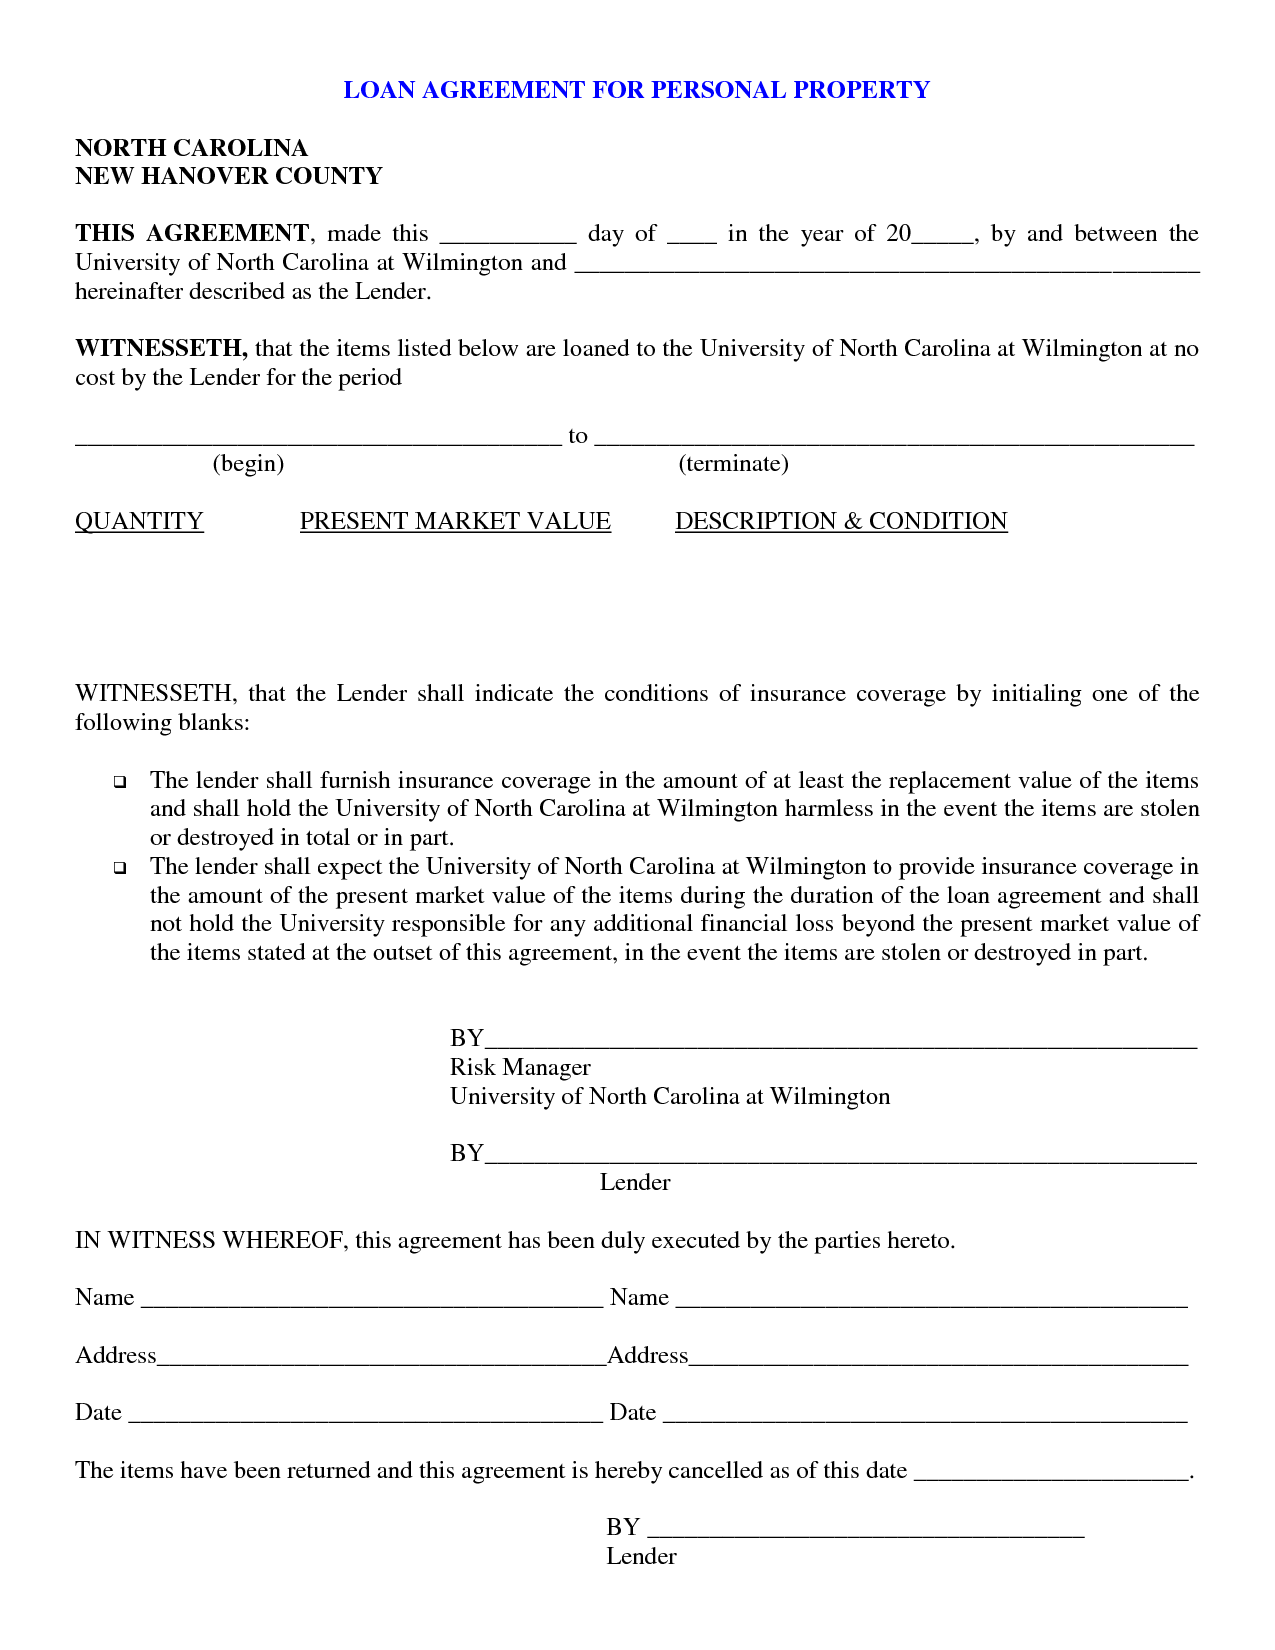 Loan Agreement Template Agreement Templates loan document – Template for a Loan Agreement